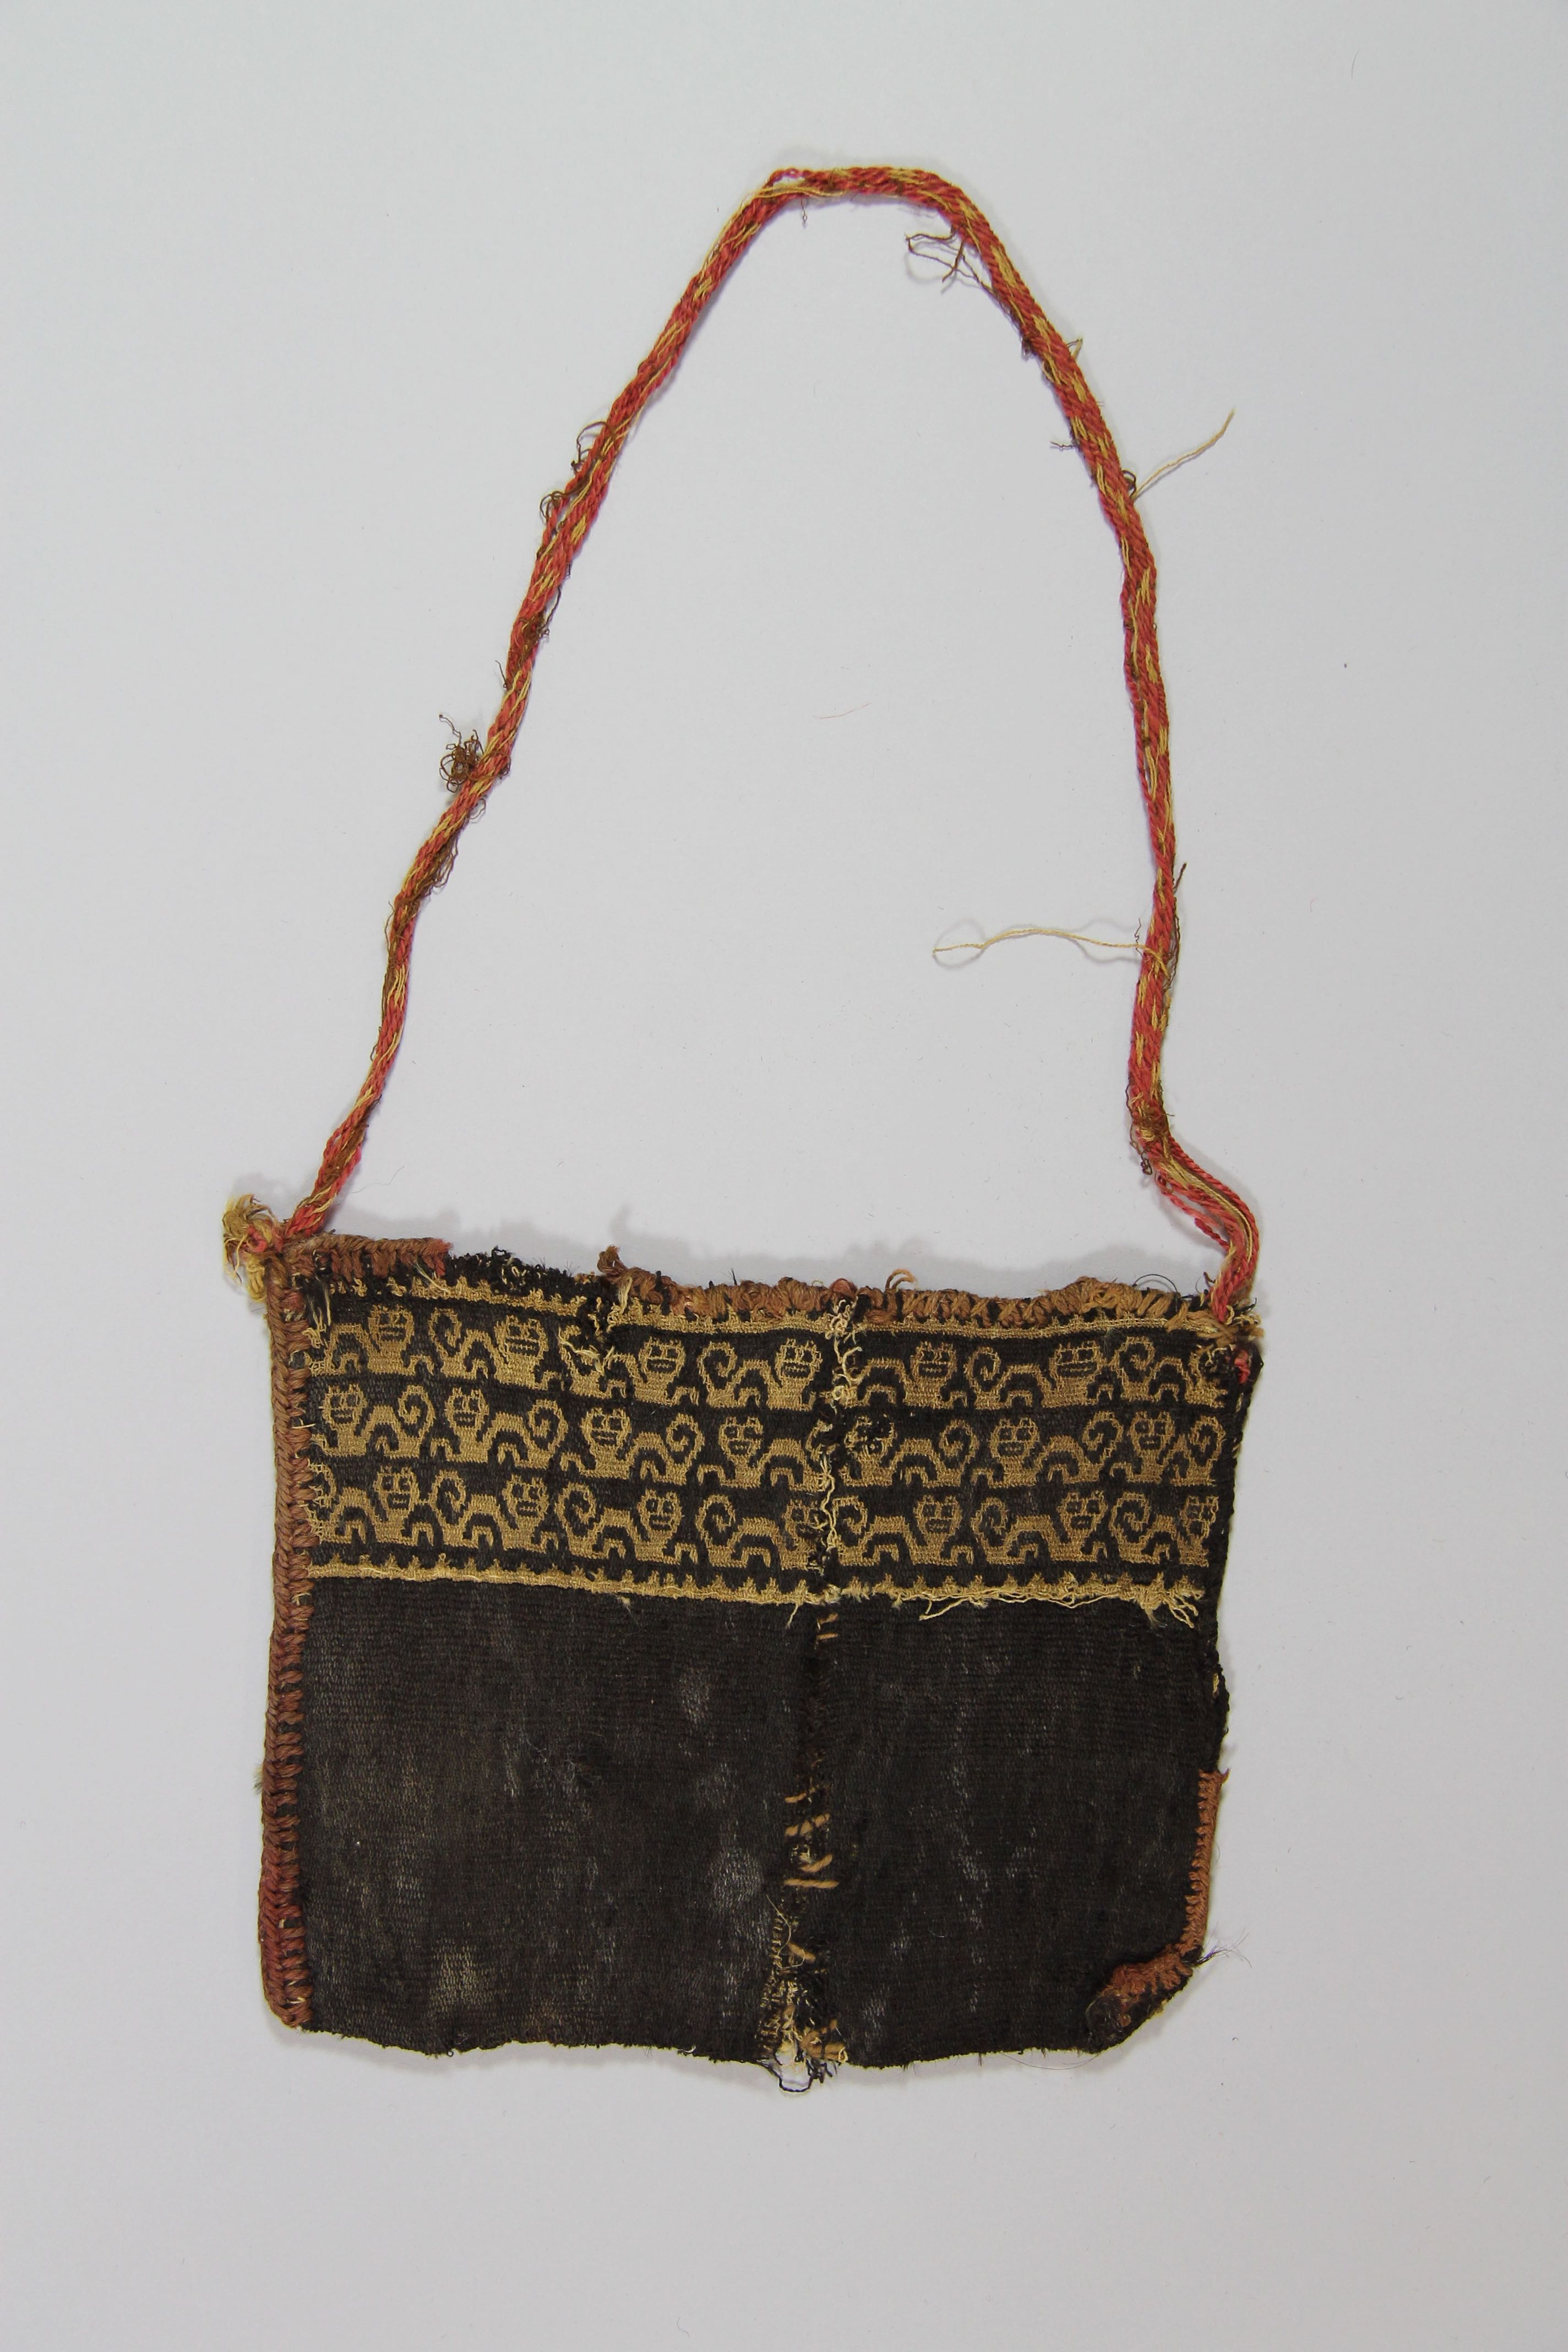 Sack (or handbag)